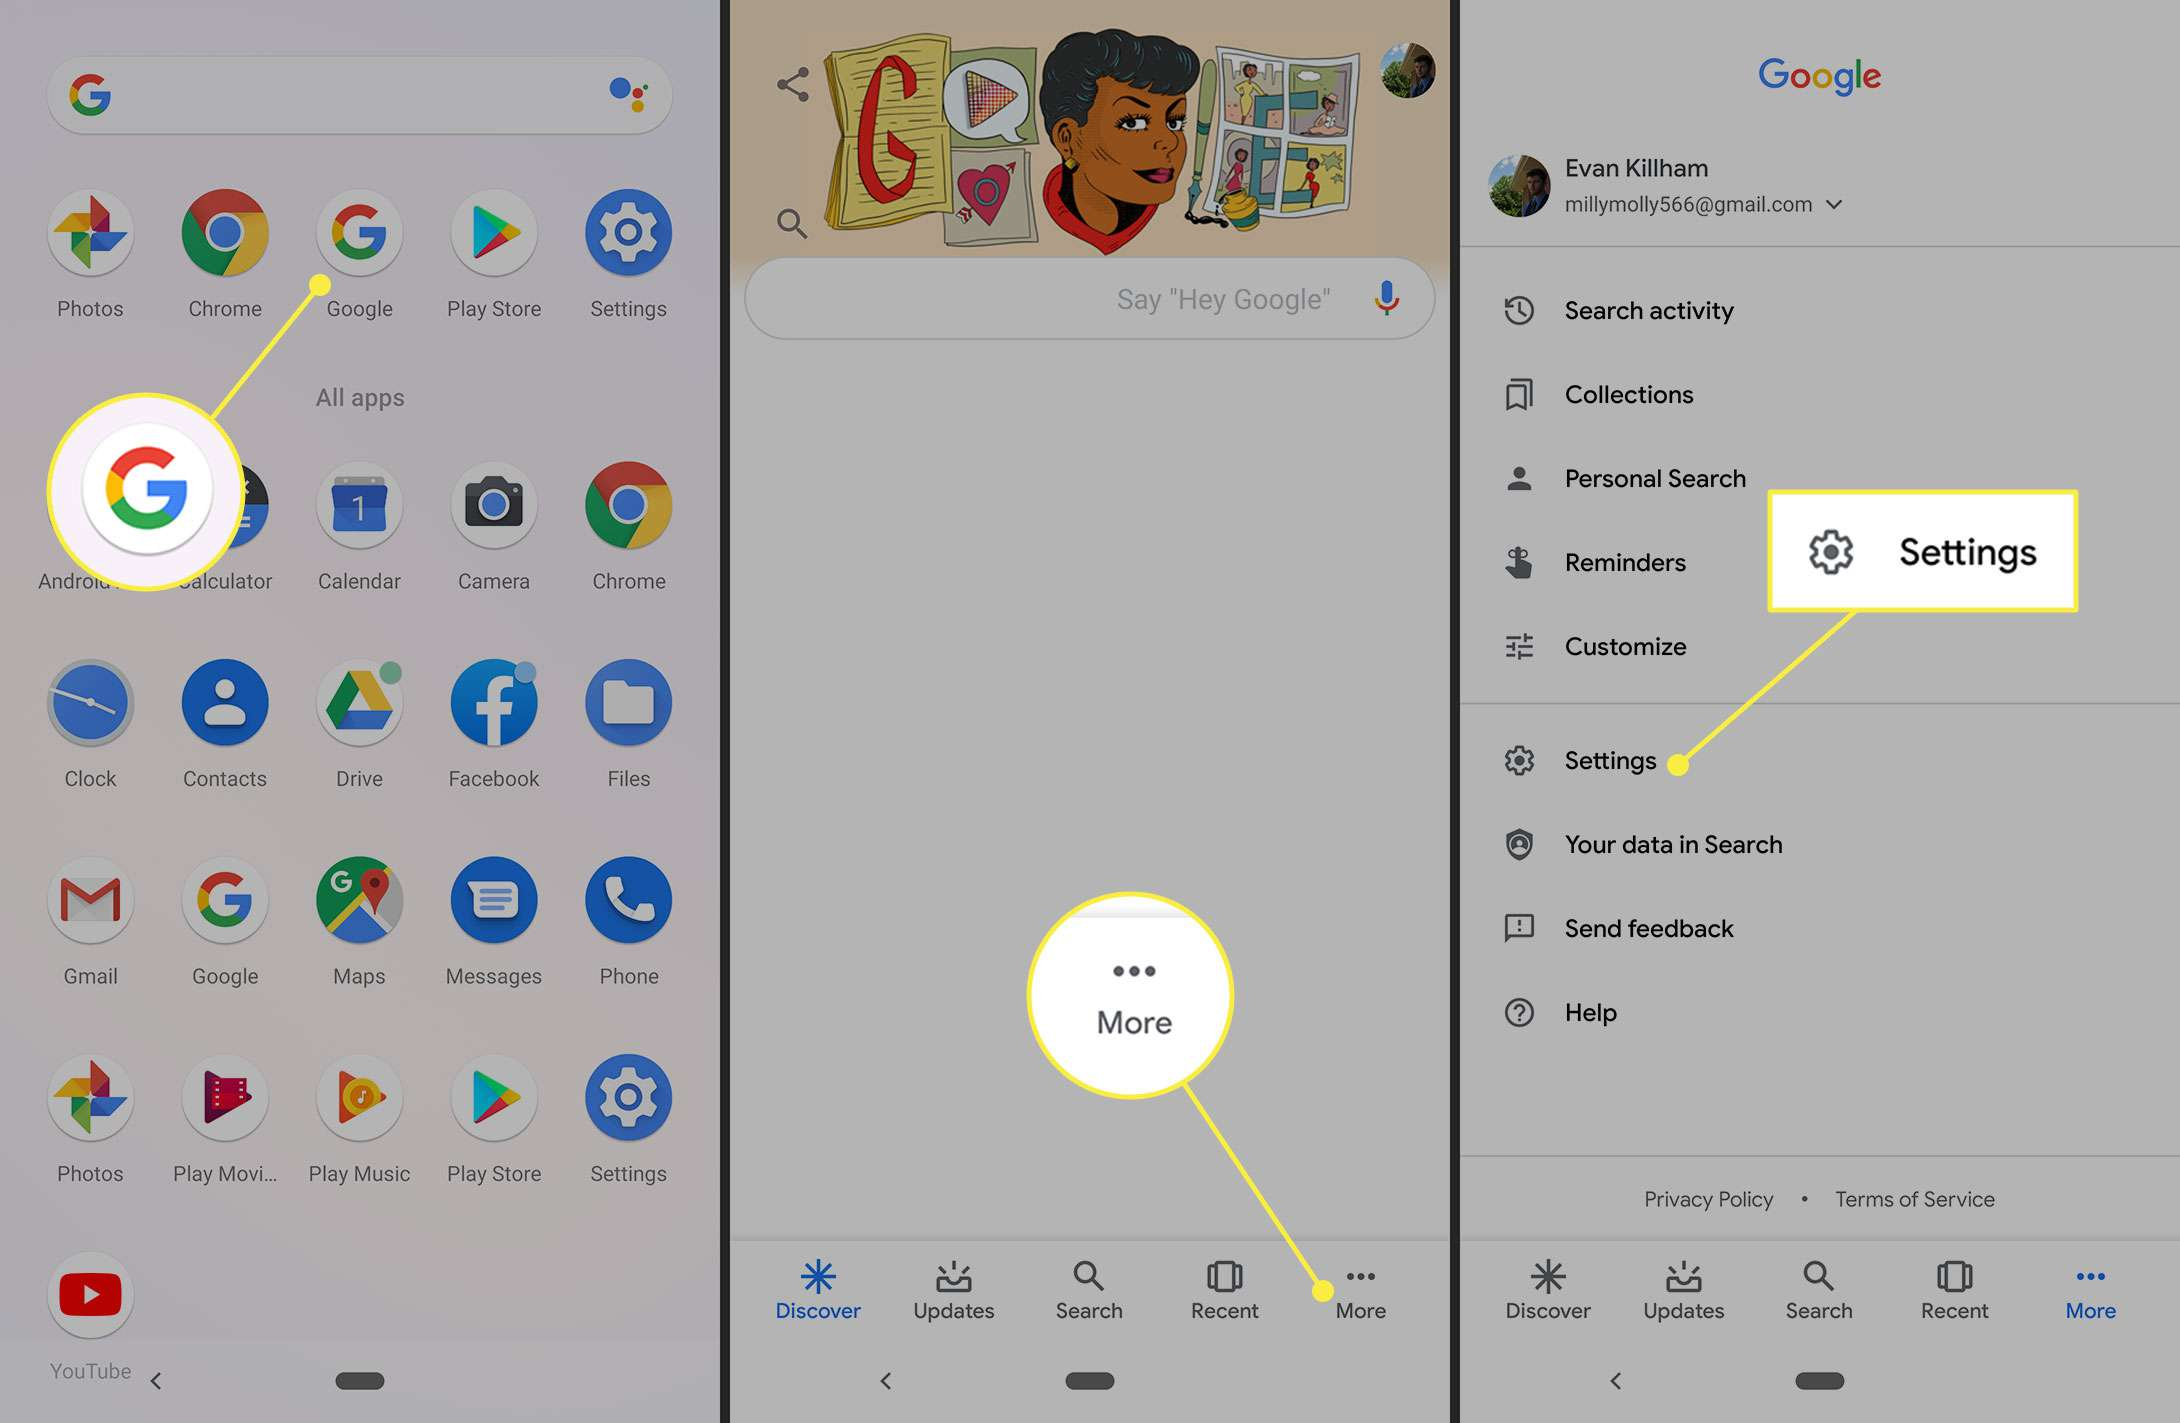 More and Settings in the Google app for Android